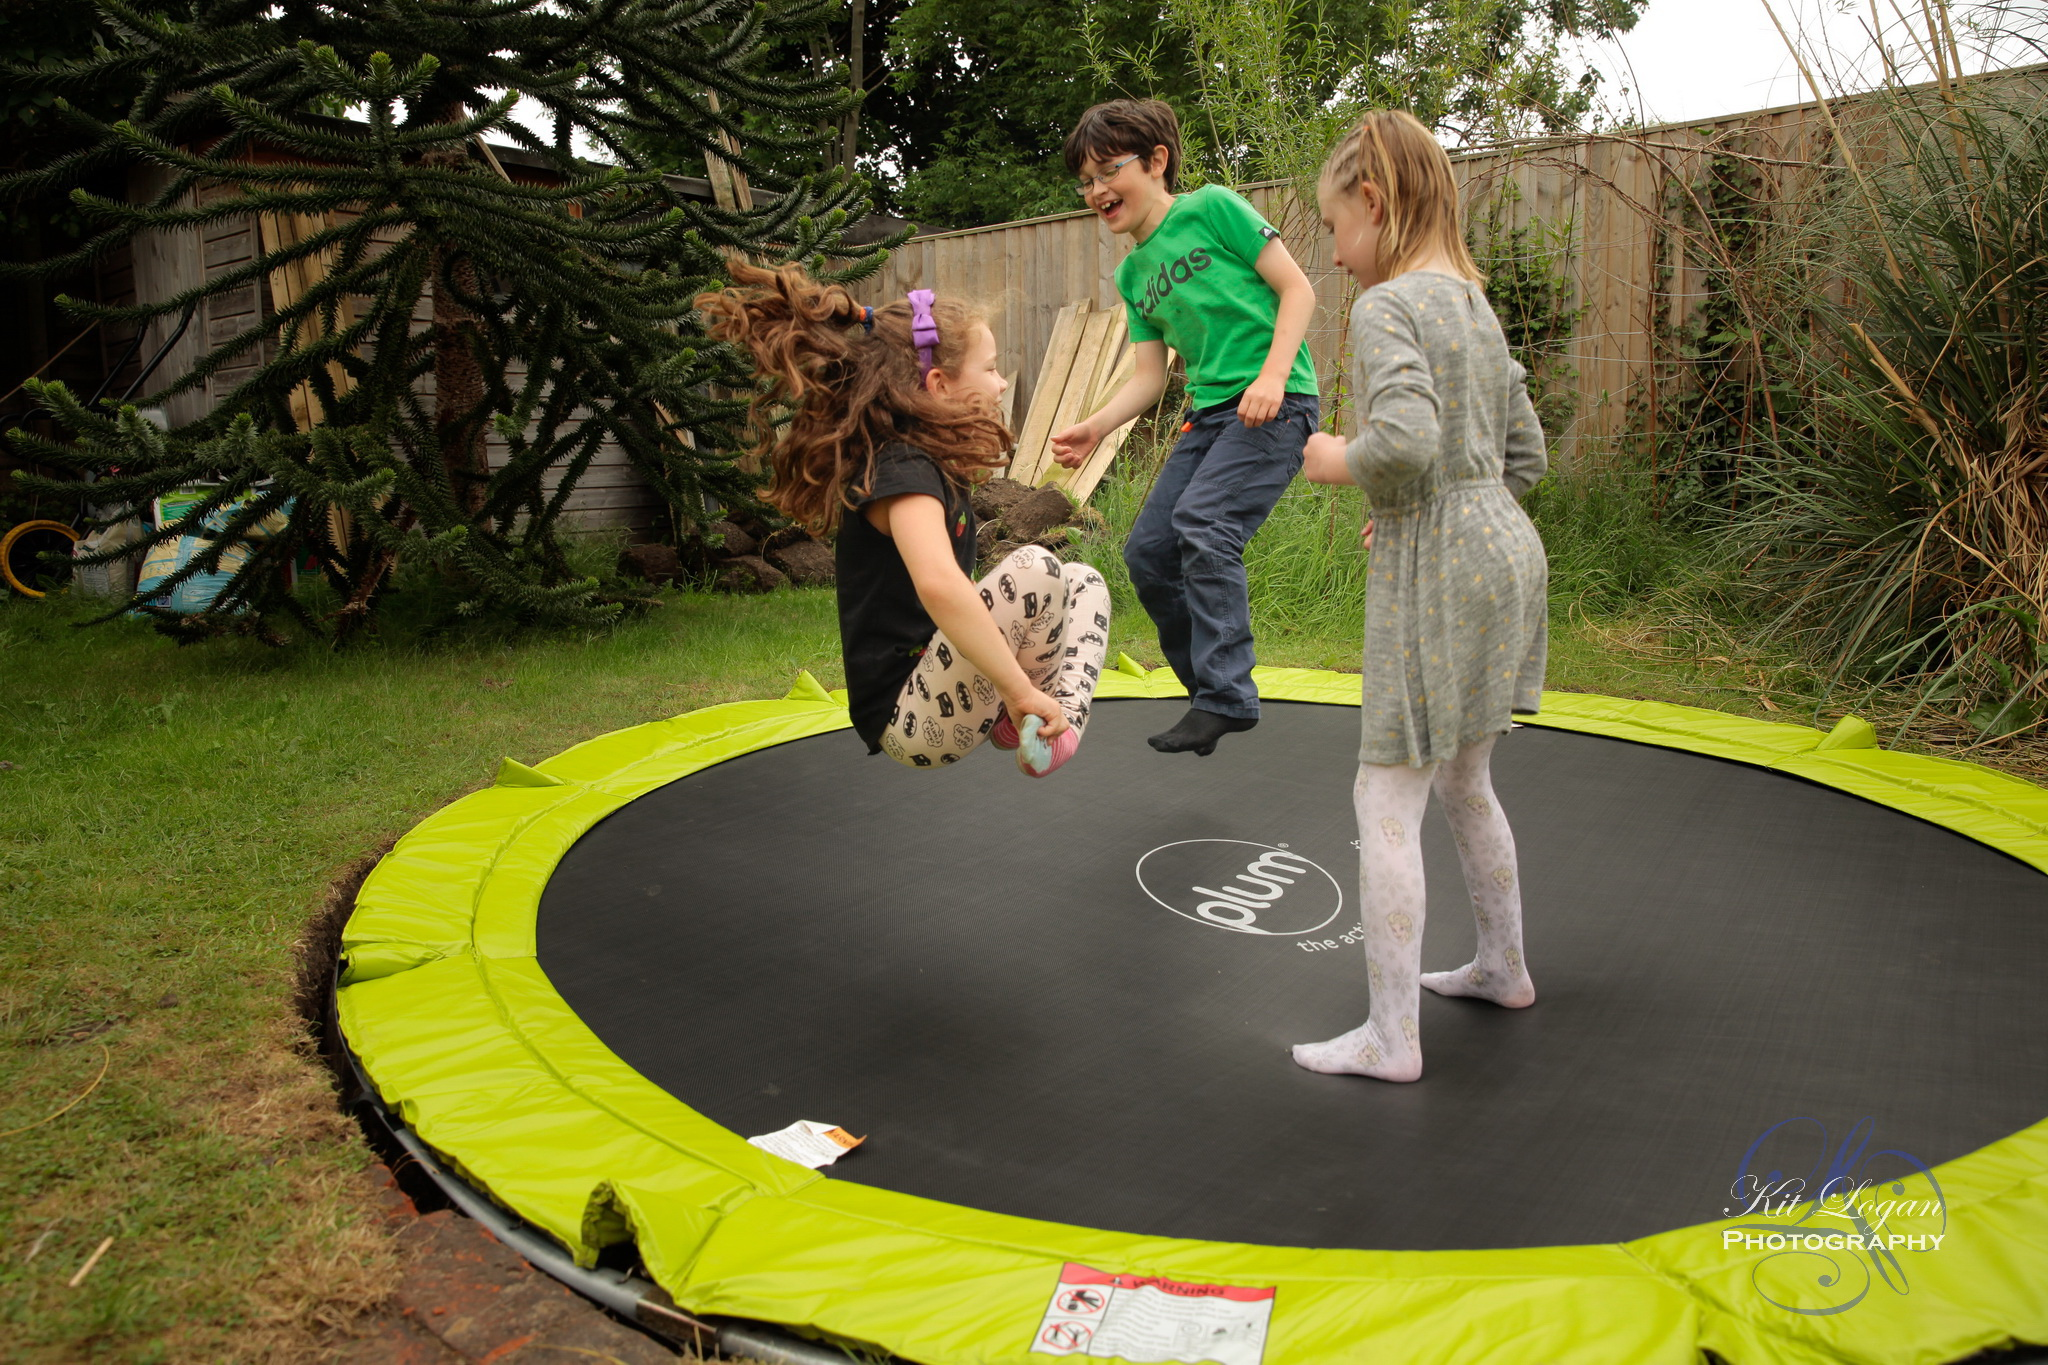 Children on trampoline playing popcorn